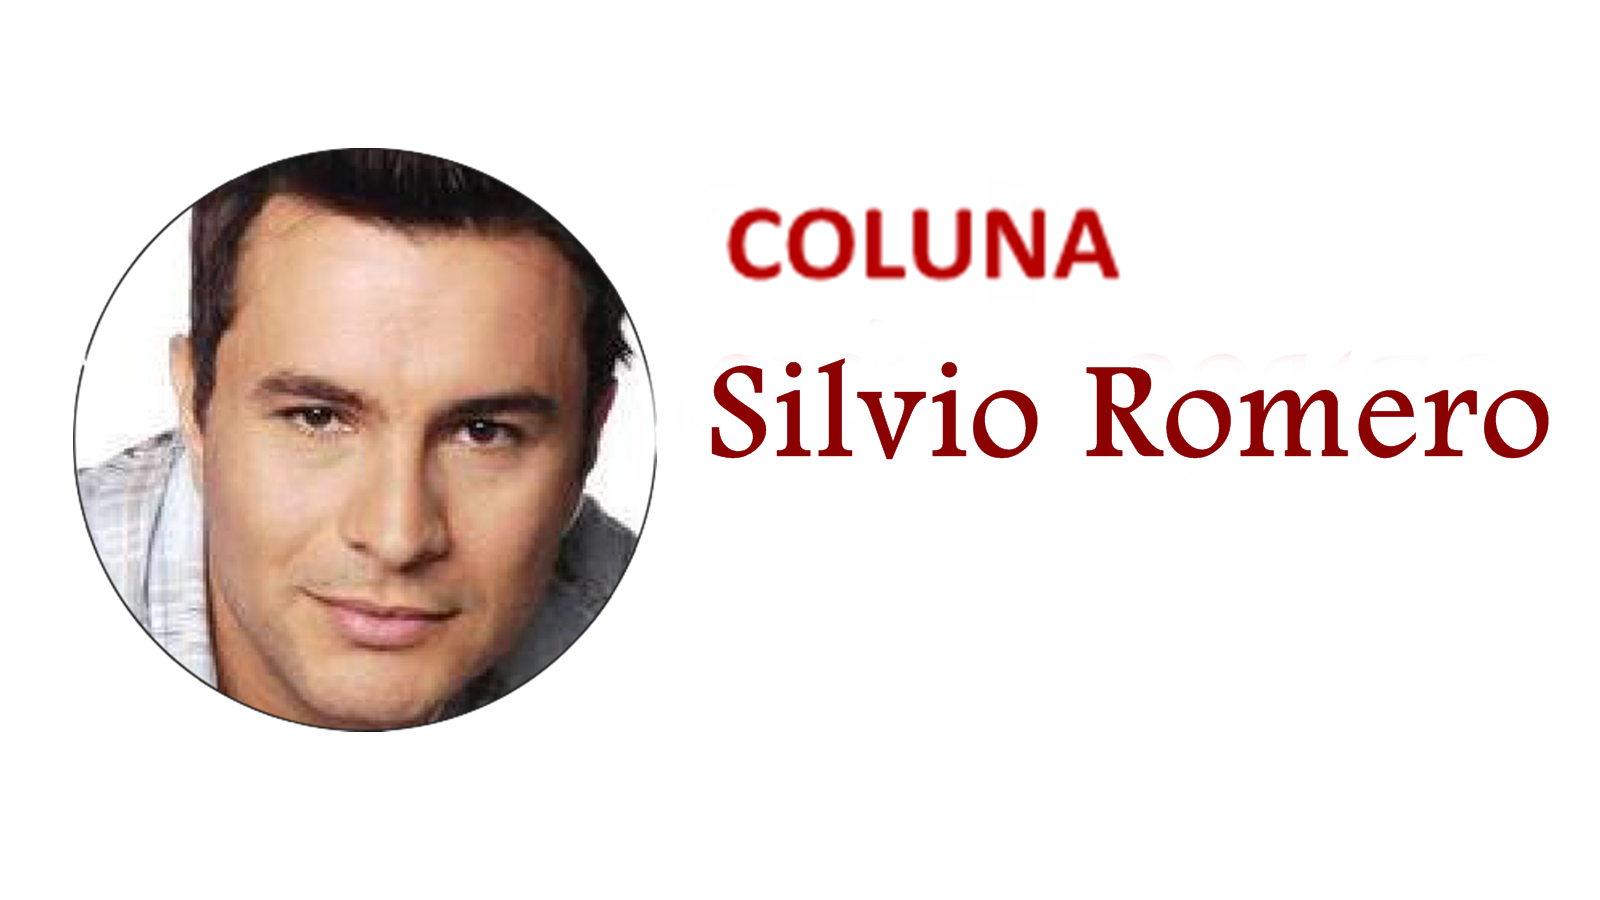 Coluna Silvio Romero